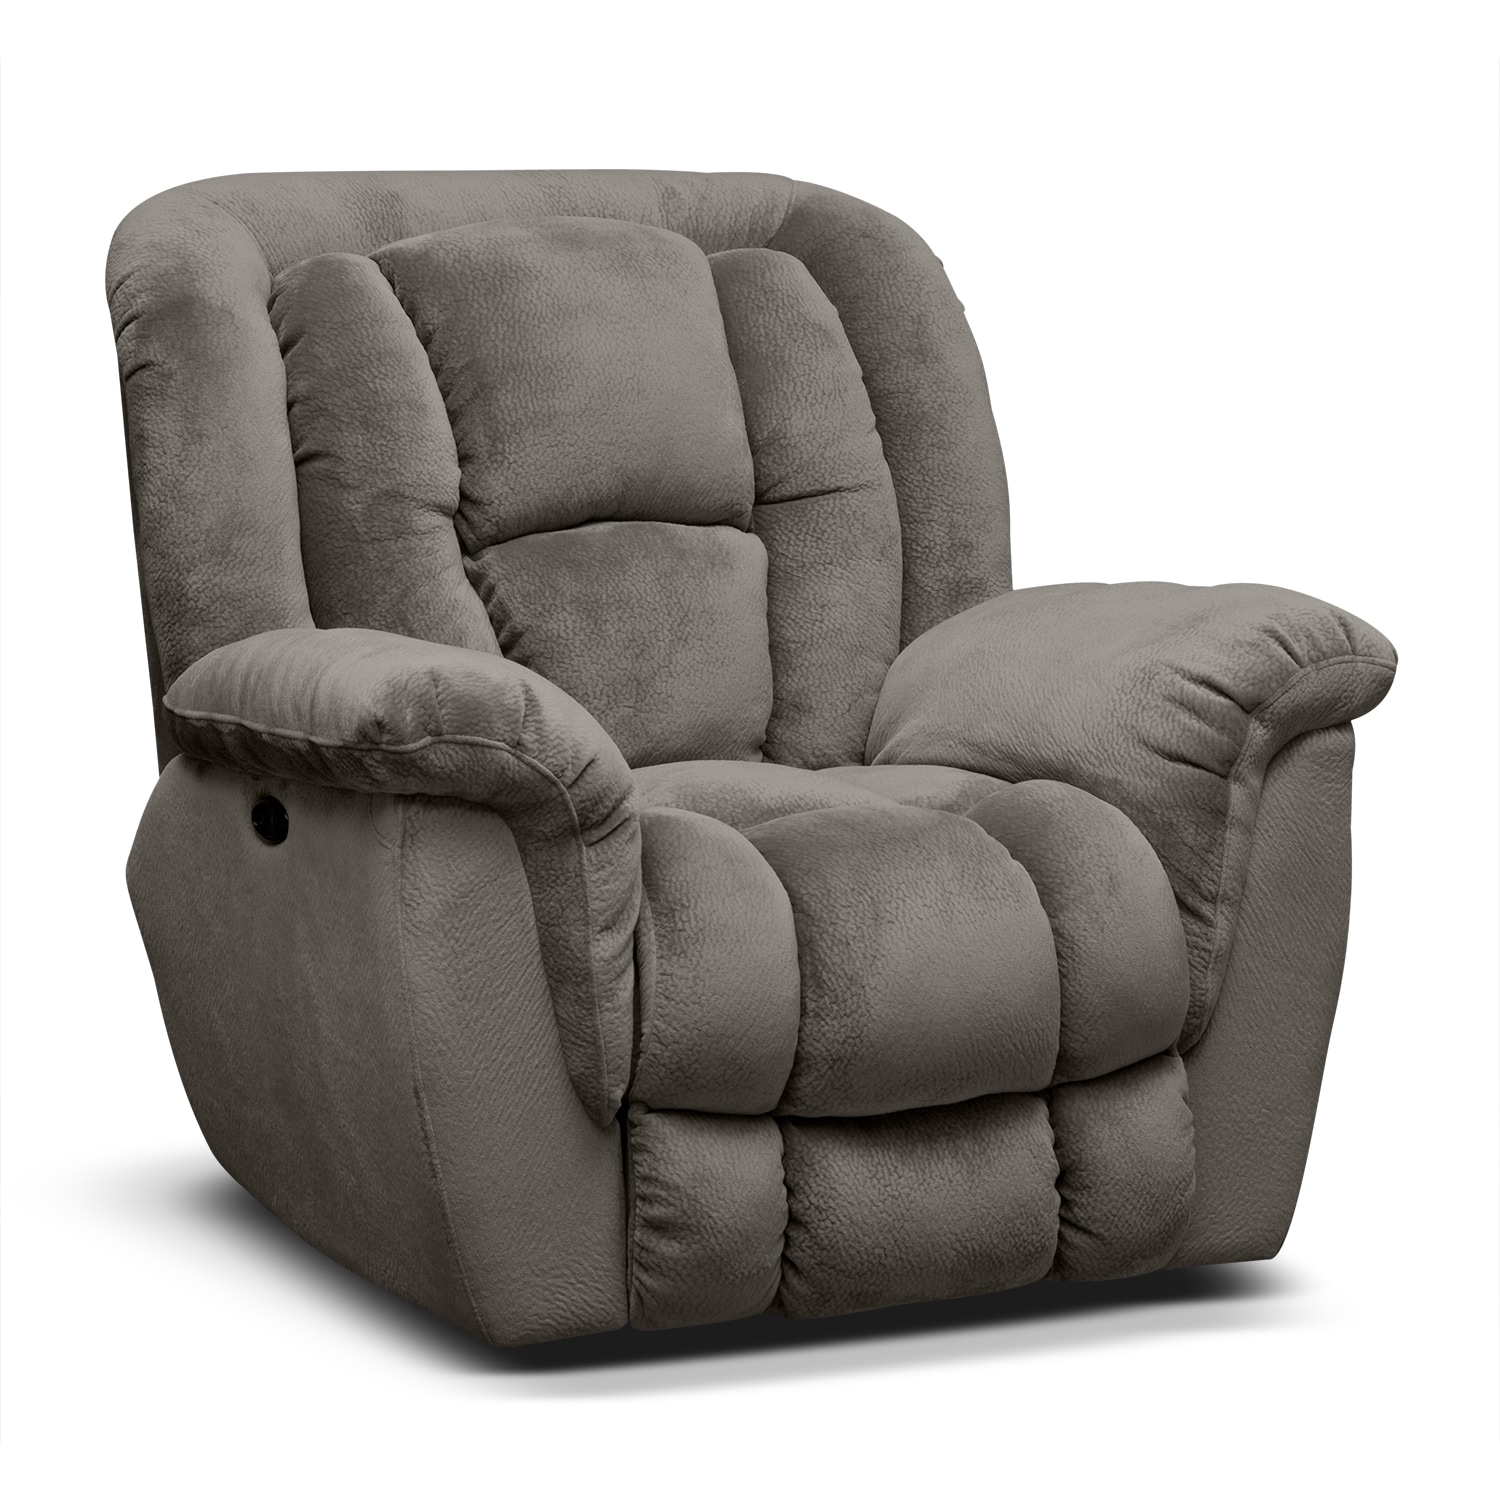 Mammoth Power Recliner